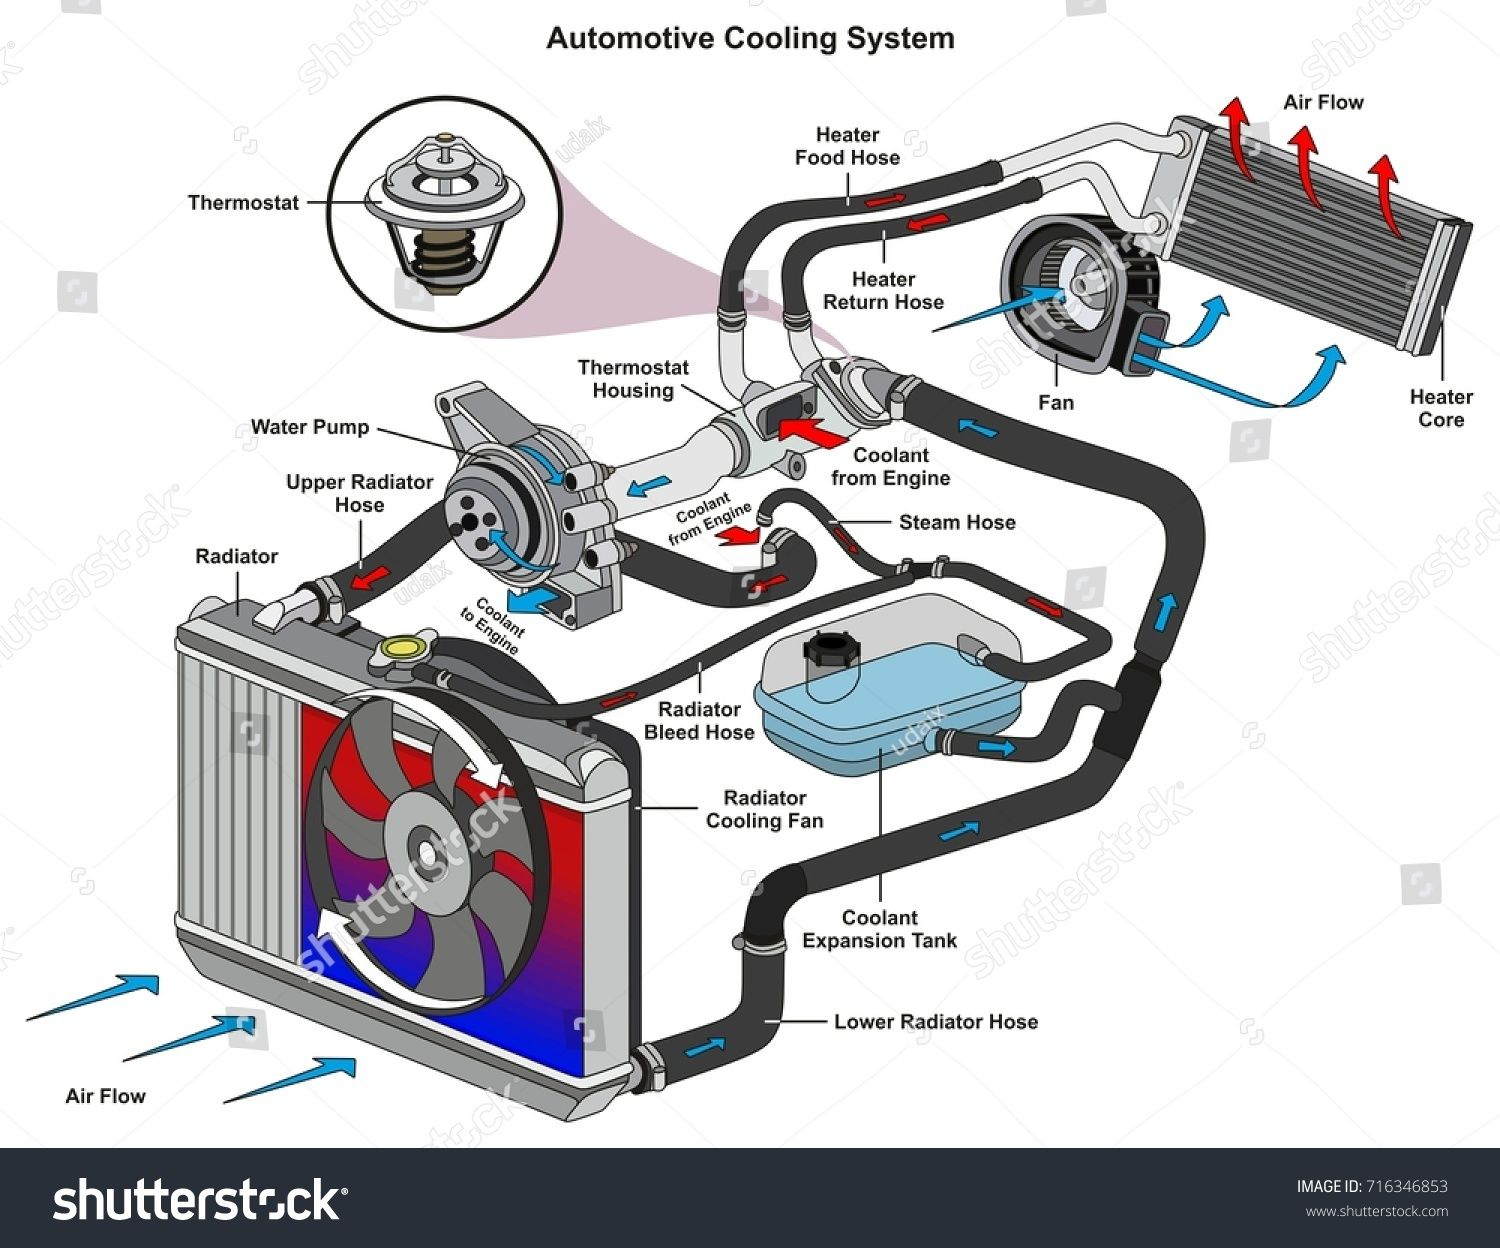 Automotive Cooling System Infographic Diagram Showing Process And